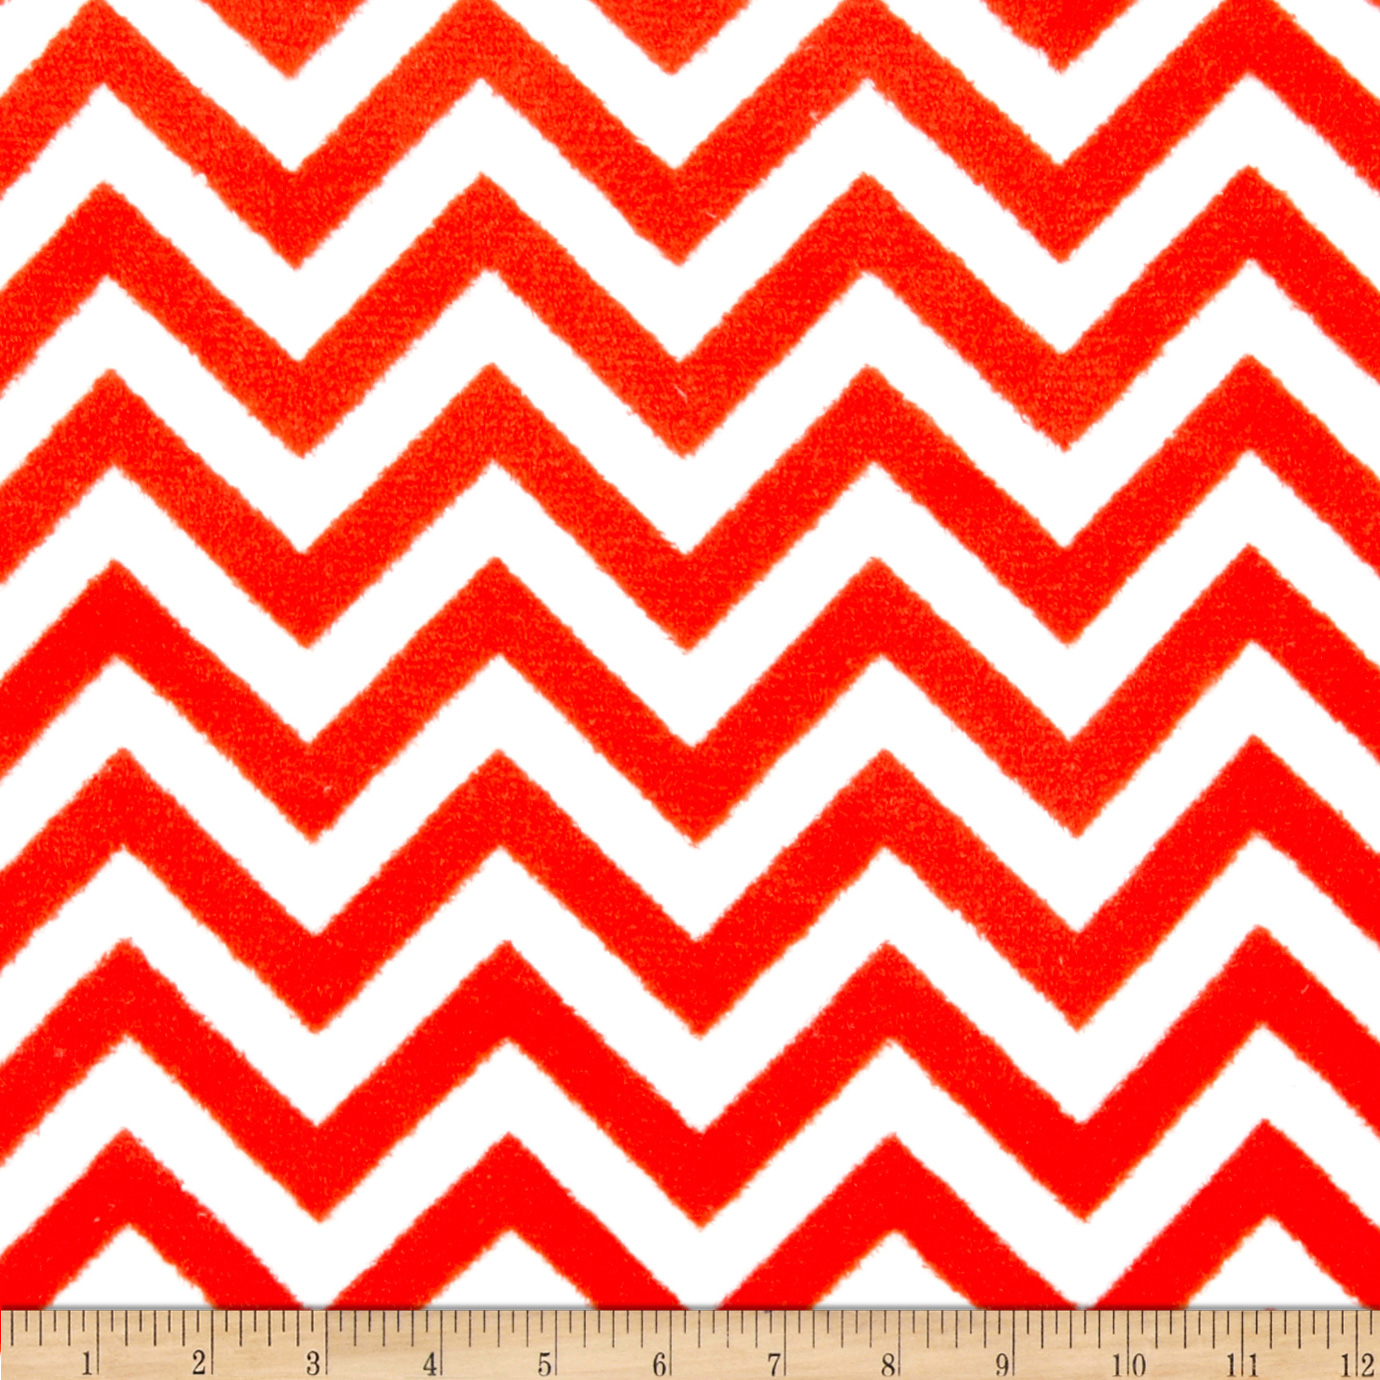 Plush Coral Fleece Chevron Ruby/White Fabric